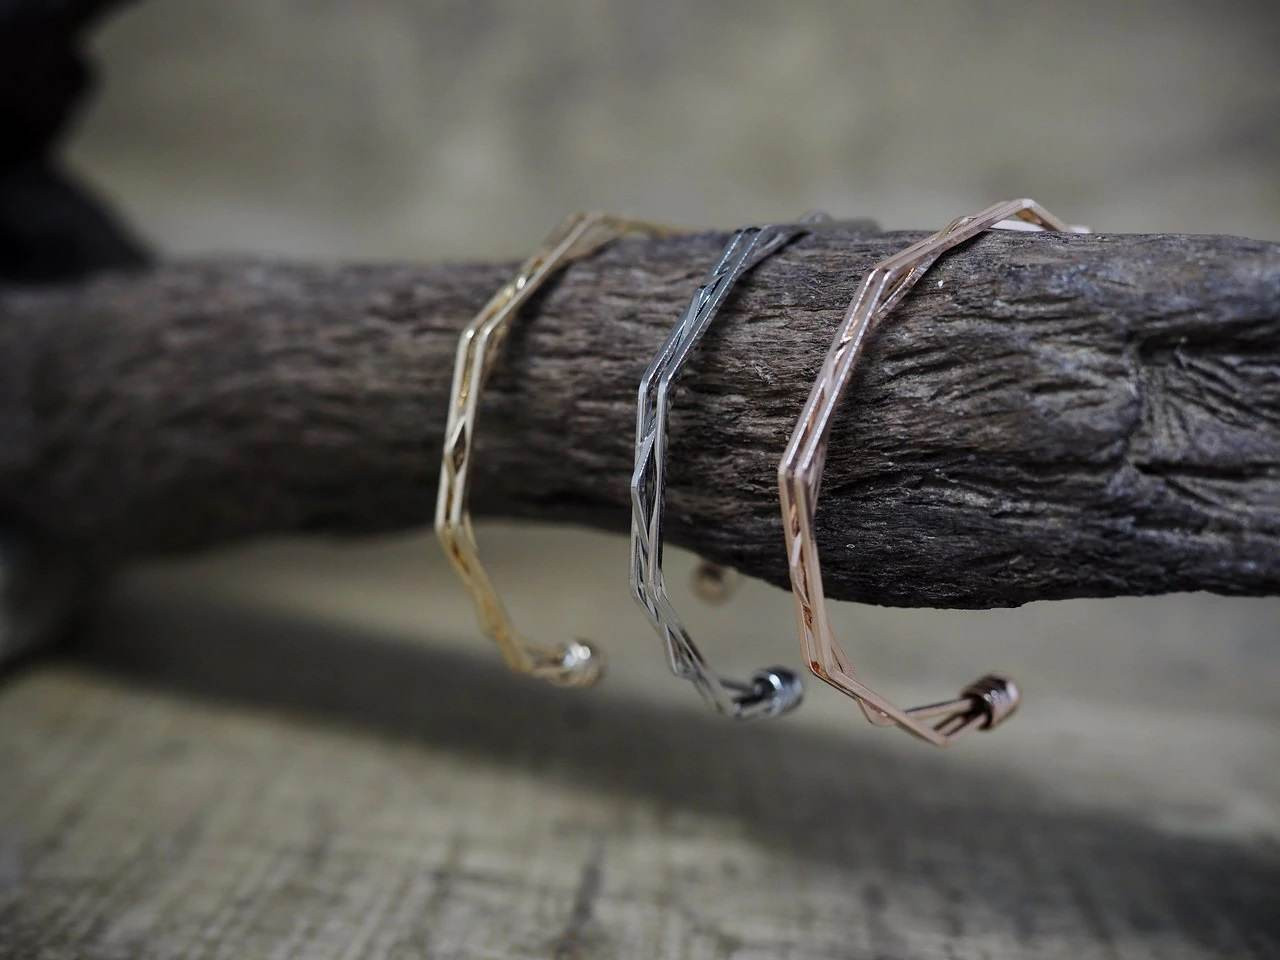 Silver, Gold, and Bronze Bangle Bracelets Hang on Tree Branch